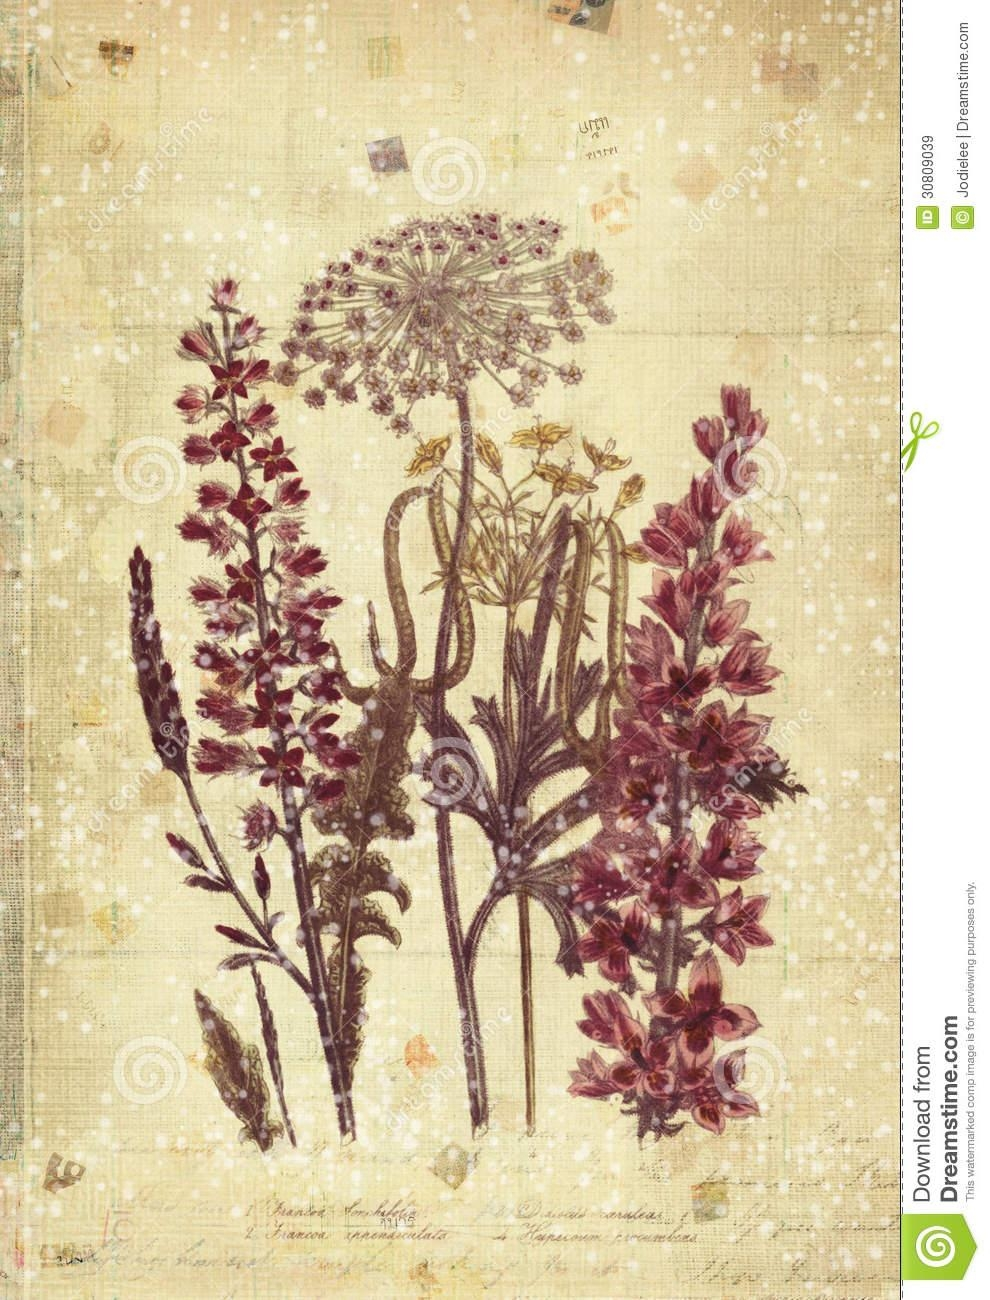 Flowers Botanical Vintage Style Wall Art With Textured Background For Vintage Style Wall Art (View 7 of 20)